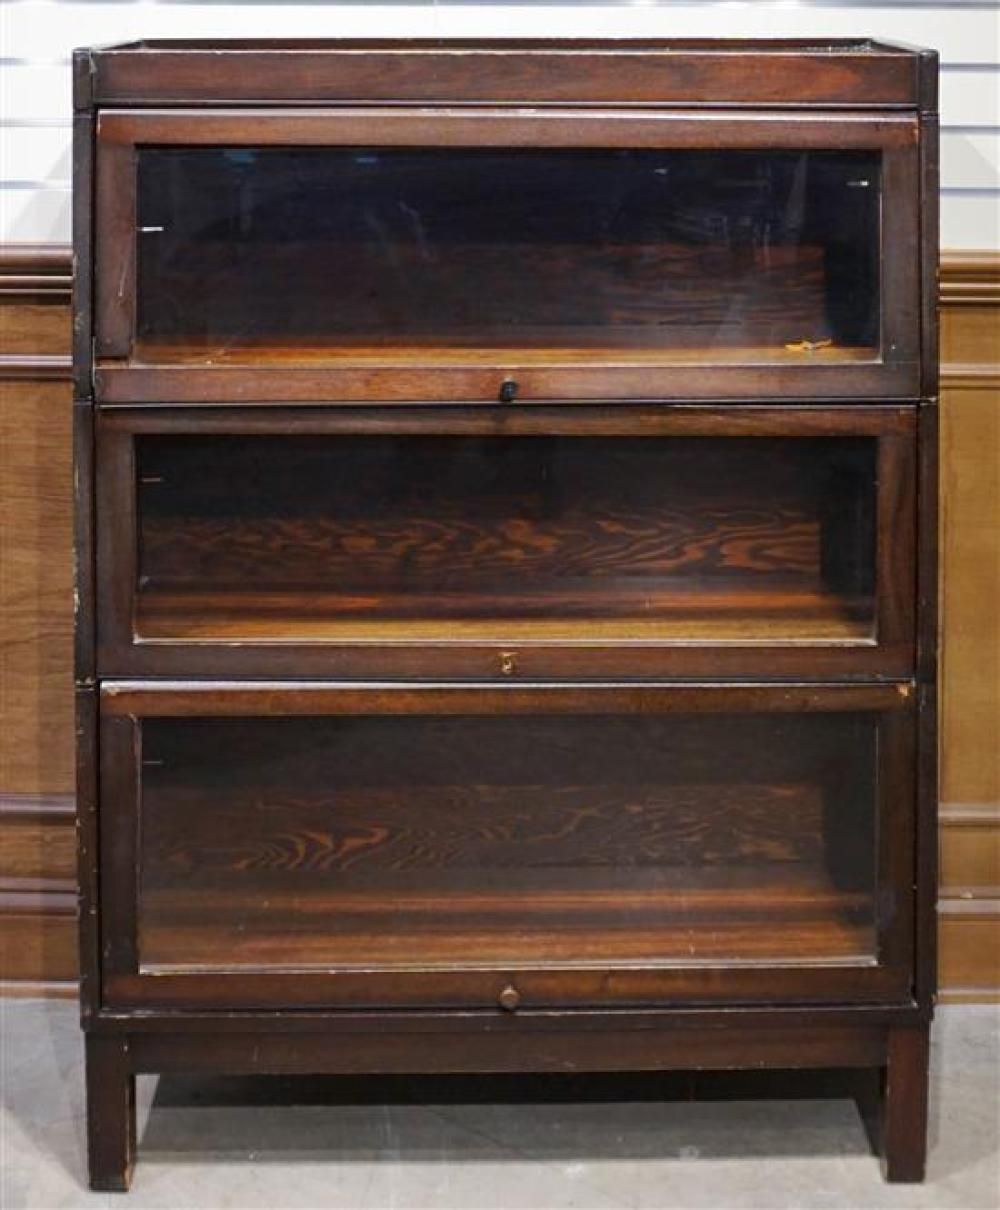 Mahogany Three-Section Barrister Bookcase by Lundstrum, H: 47 in, W: 33-3/4 in, D: 11 in